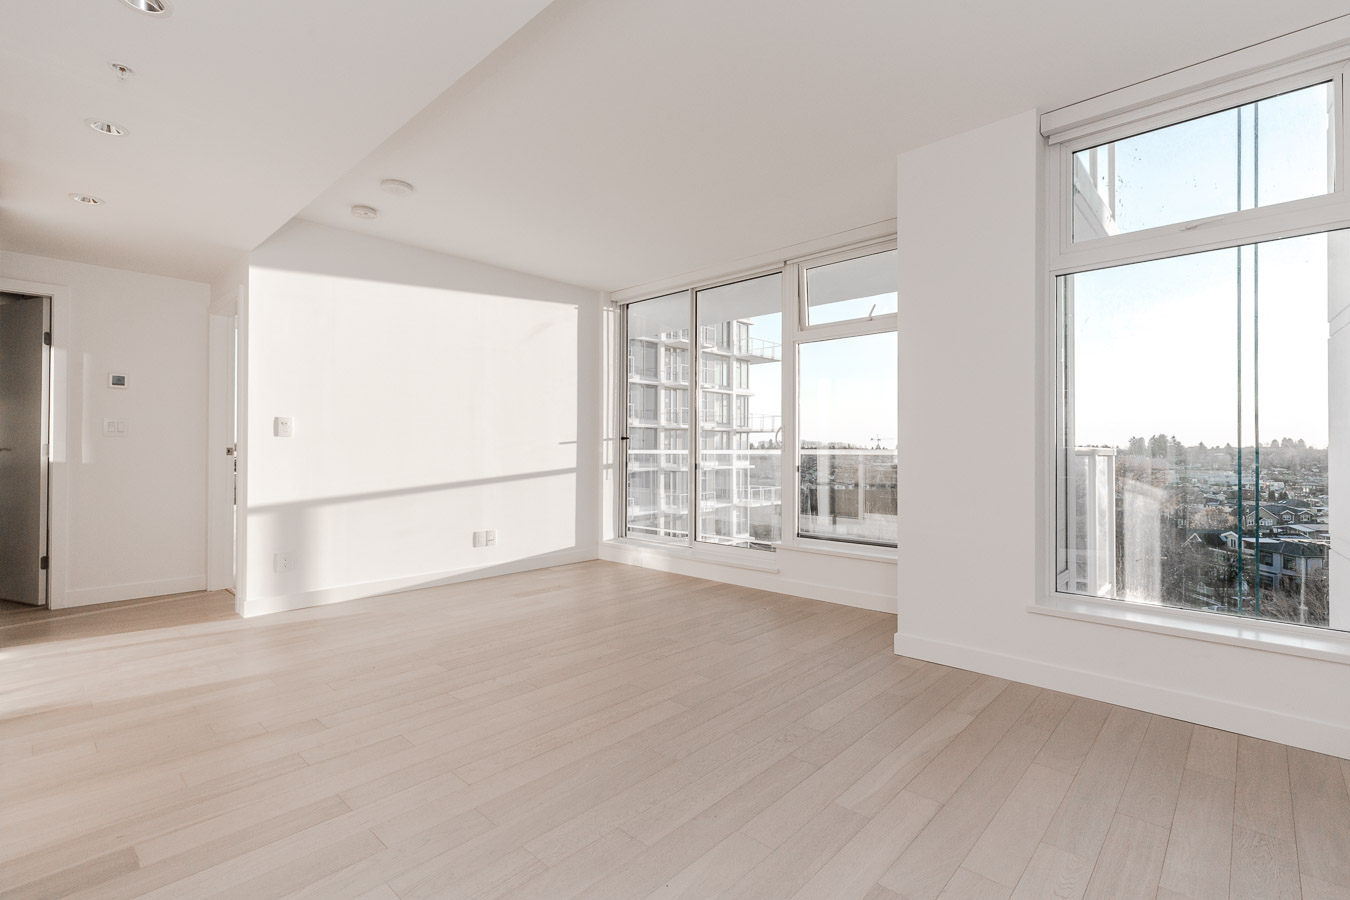 empty living room with white walls and hardwood floors and windows